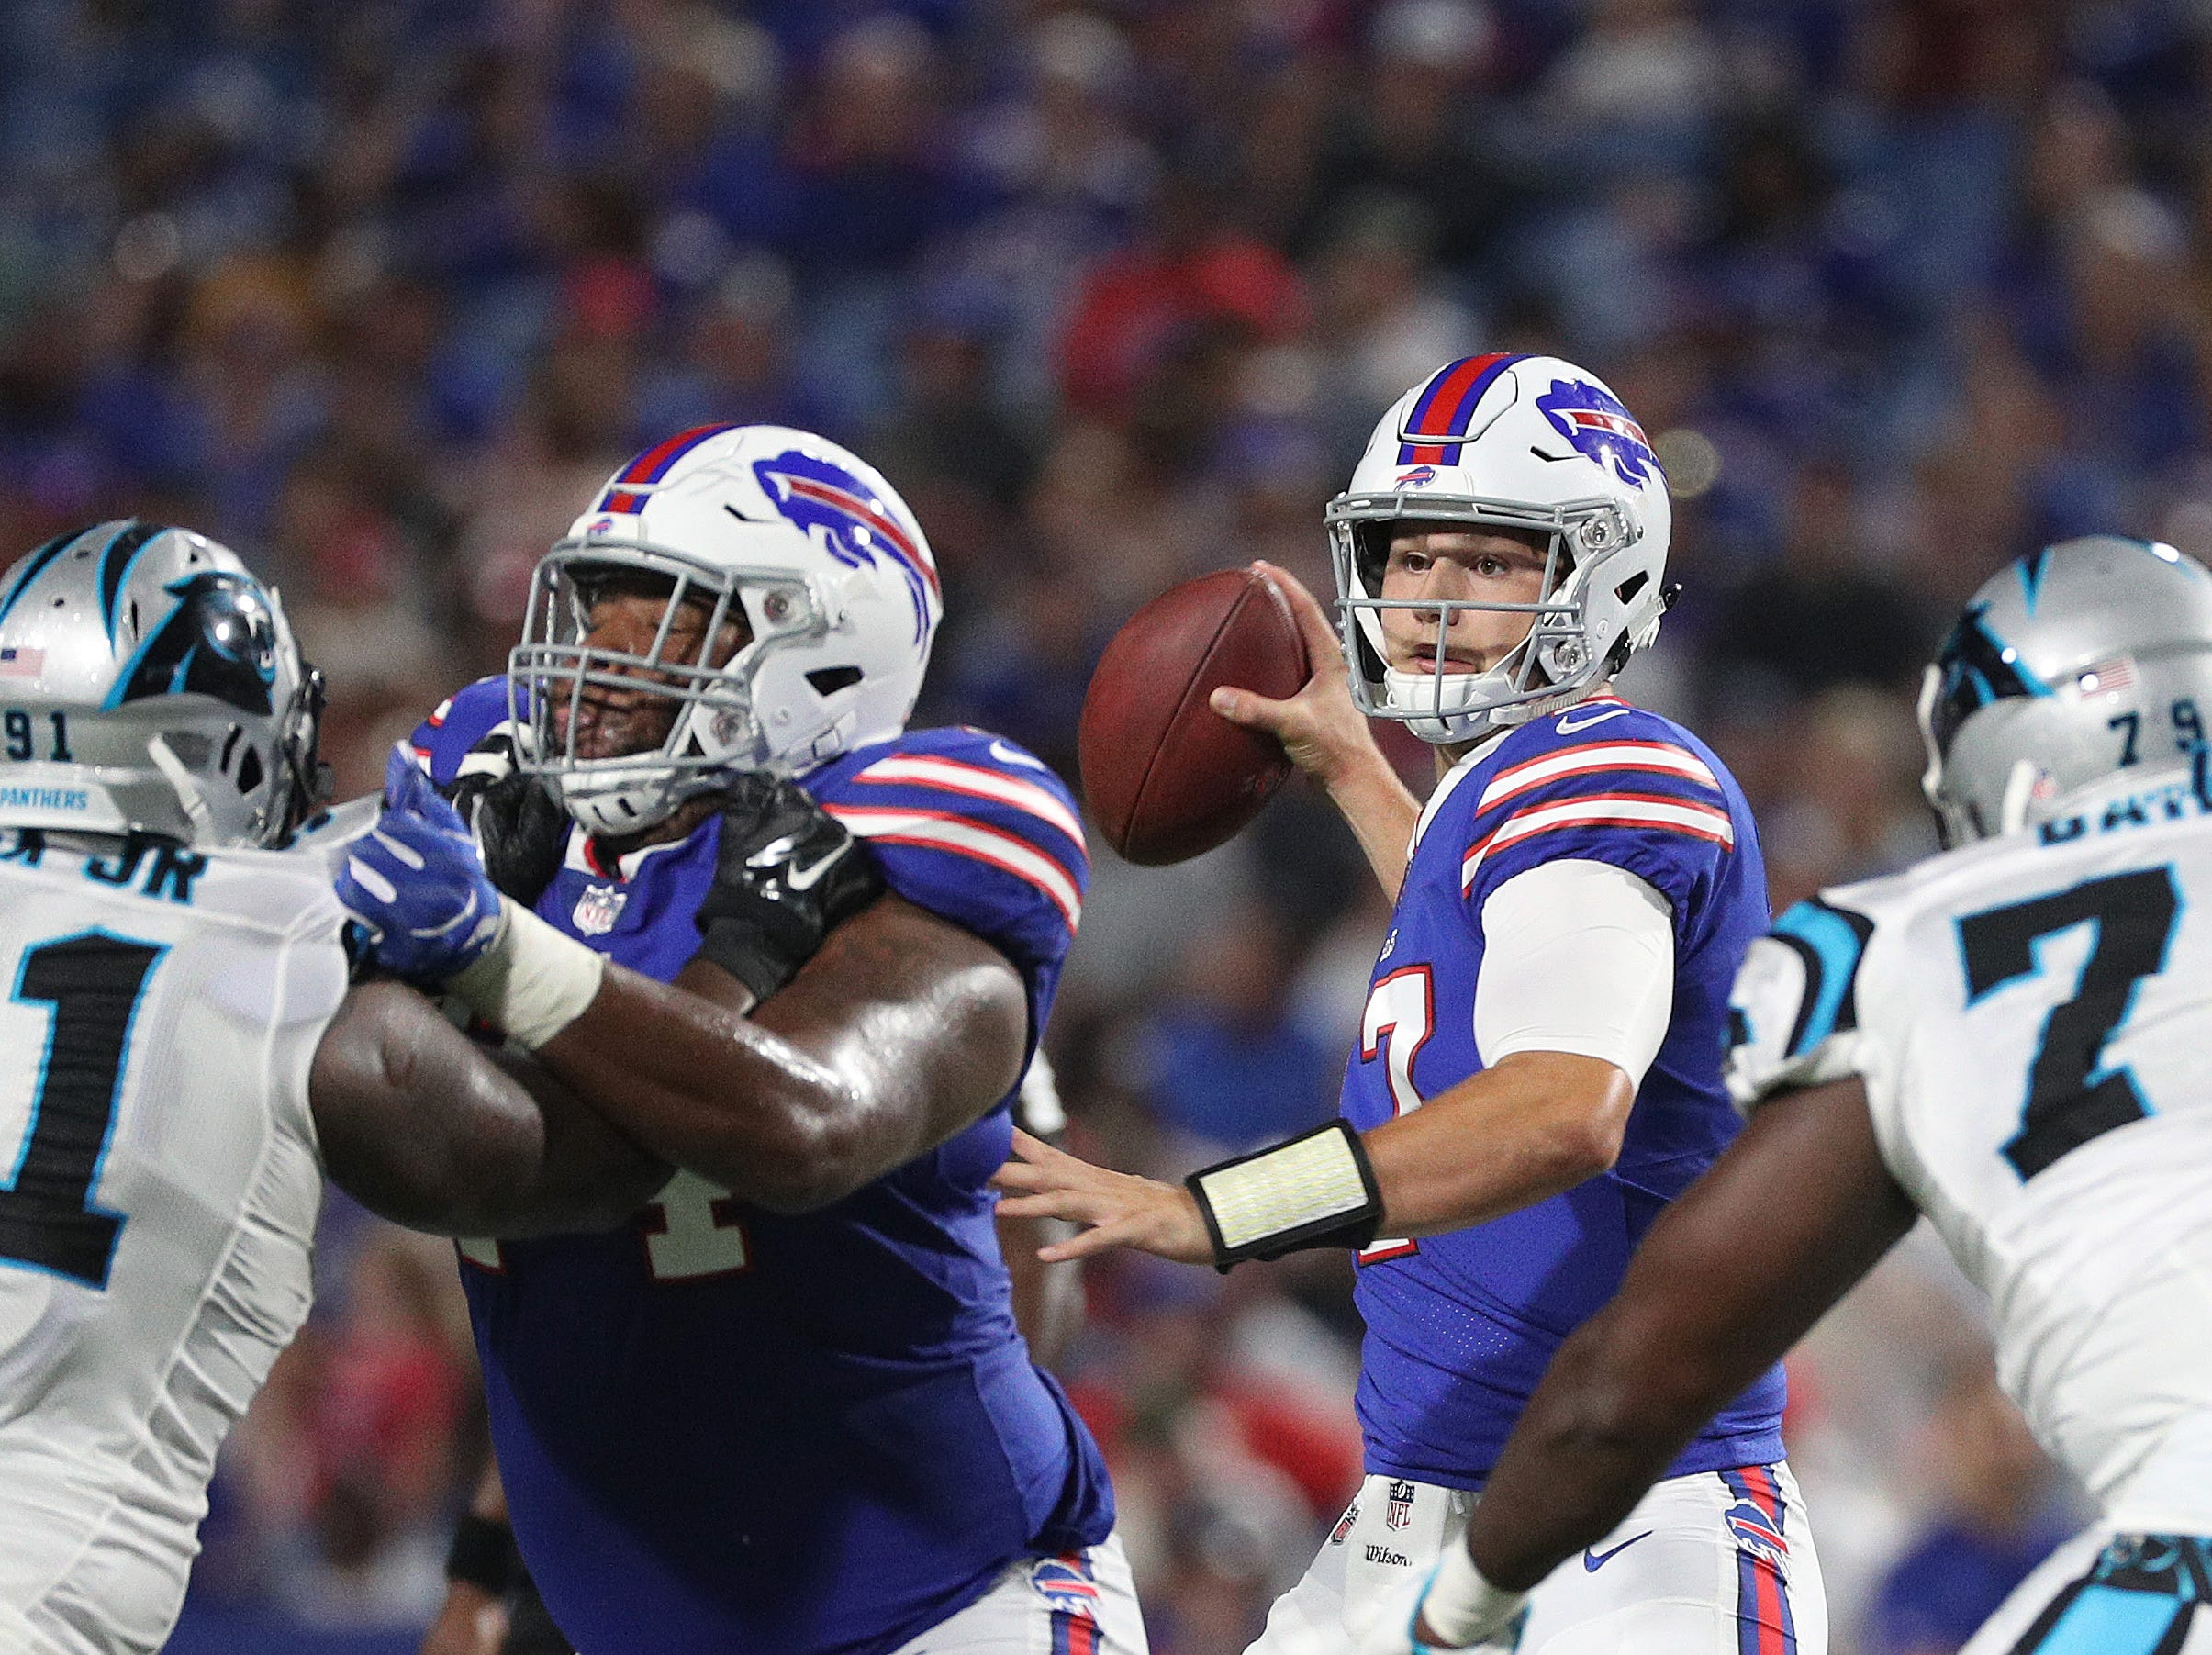 Quarterback Josh Allen stands tall in the pocket against Carolina.